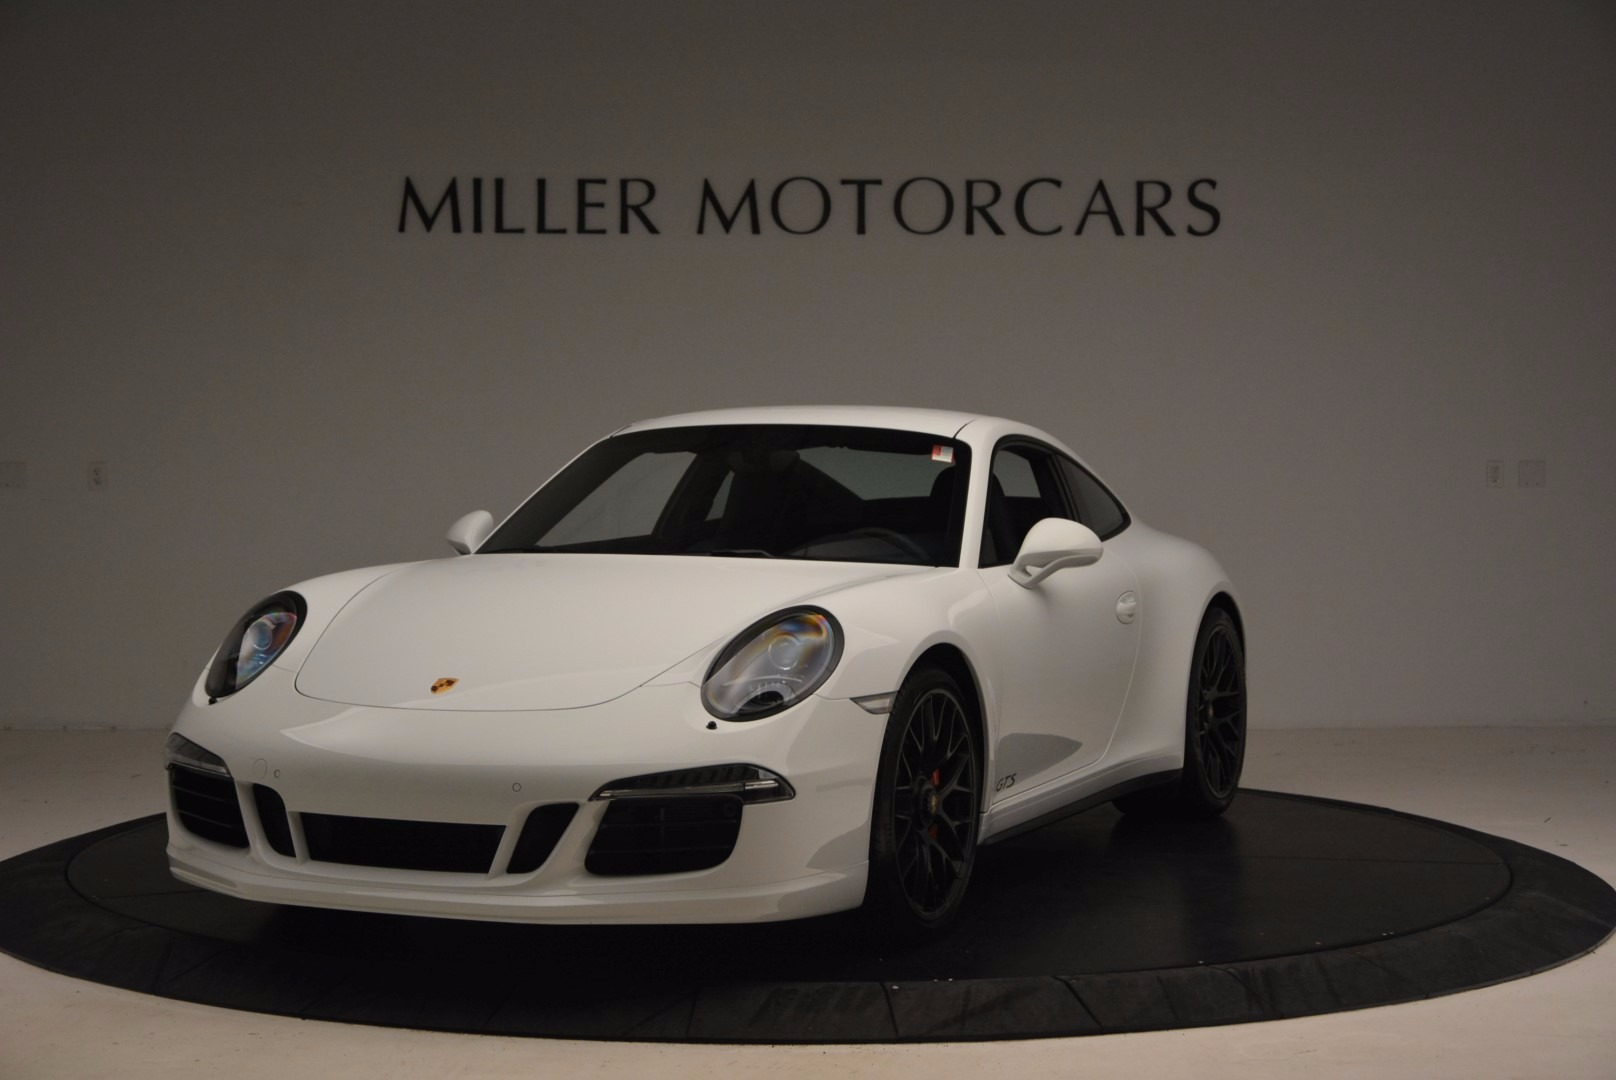 Used 2015 Porsche 911 Carrera GTS for sale Sold at Bentley Greenwich in Greenwich CT 06830 1